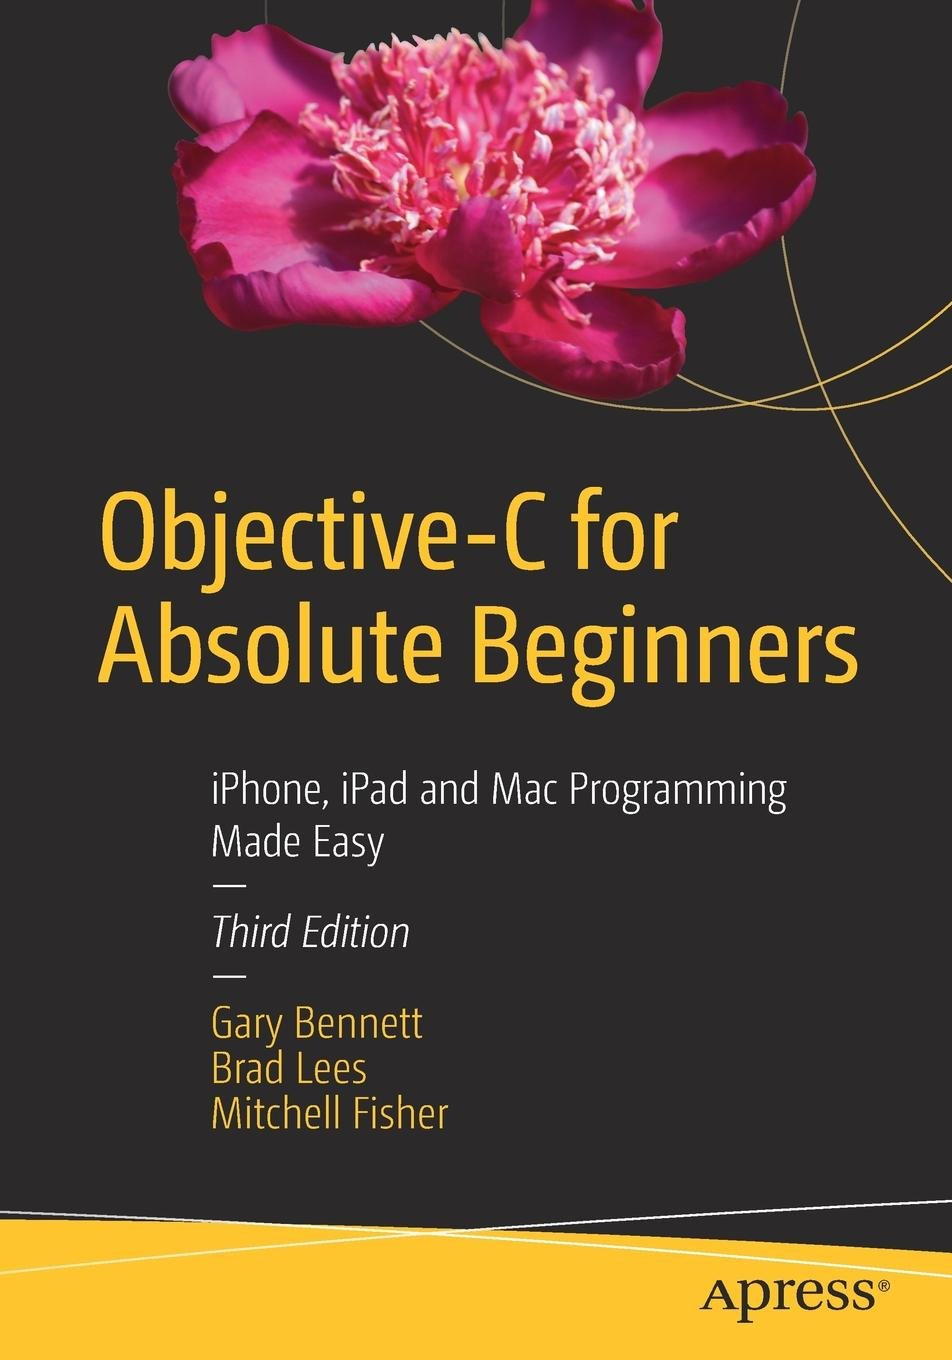 Objective-C for Absolute Beginners: iPhone, iPad